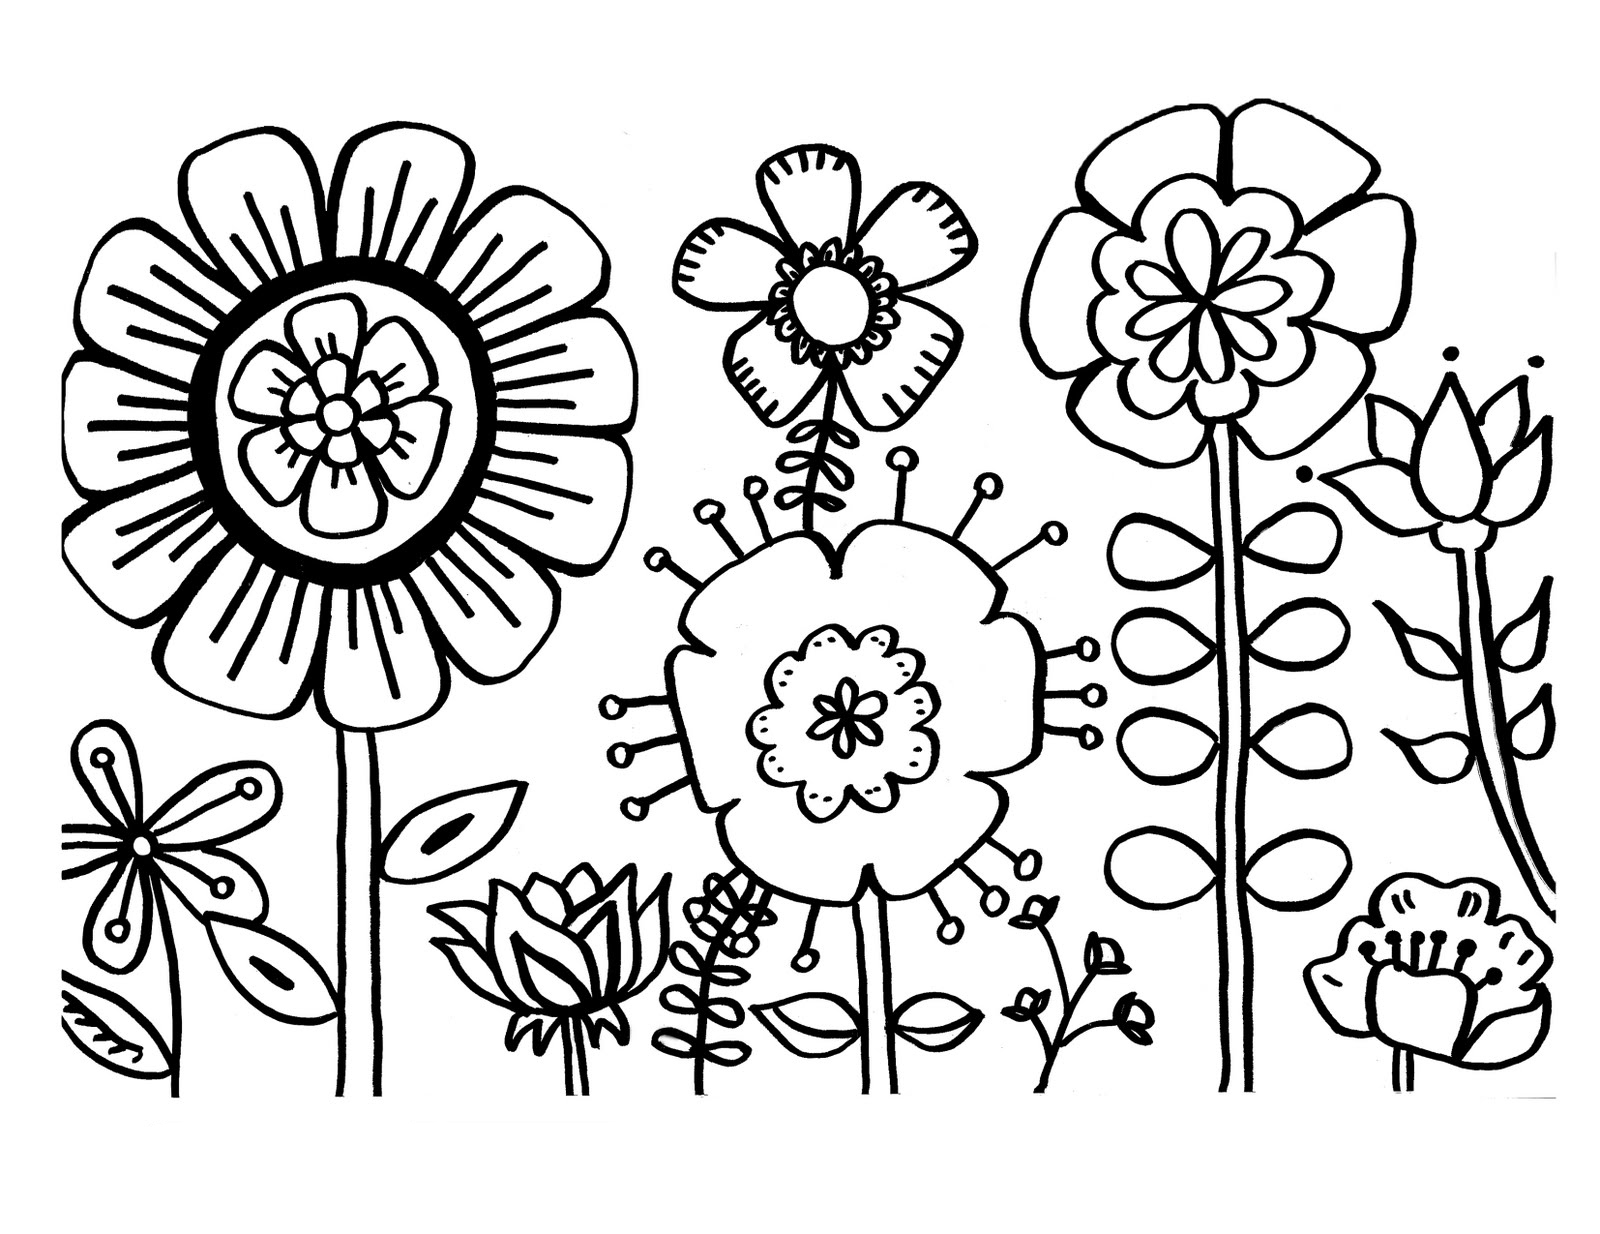 pictures to colour in of flowers free printable flower coloring pages for kids best to flowers pictures in of colour